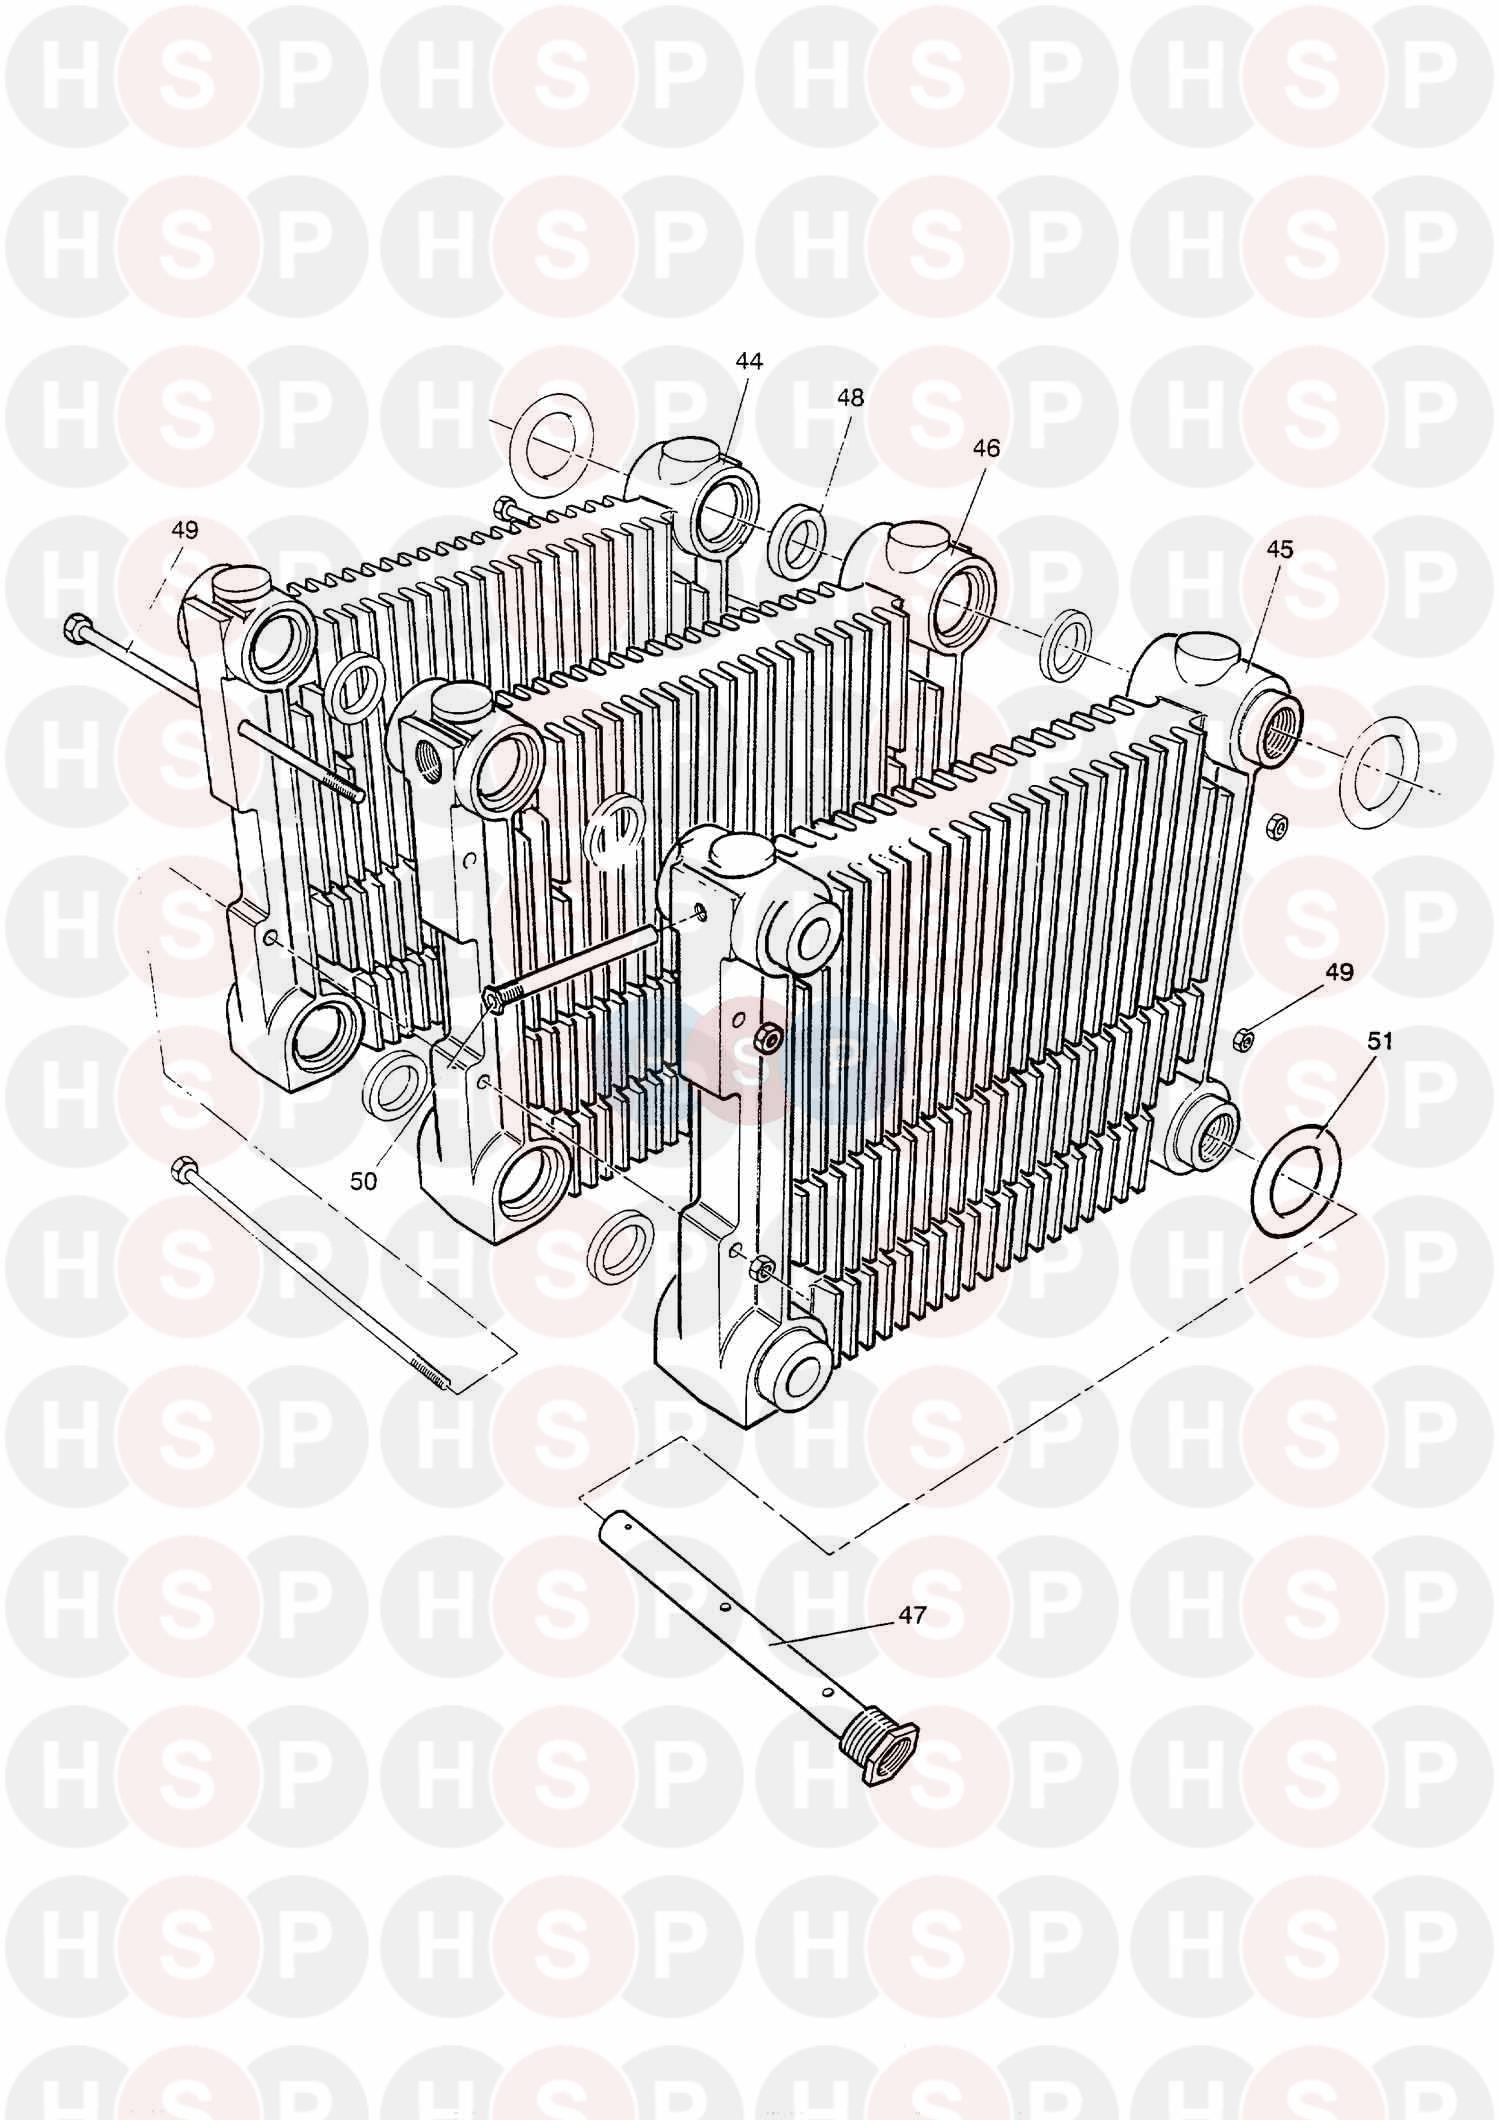 Baxi Boston 2 80 Rs Boiler Diagram Heating Spare Parts Shopping Cart For